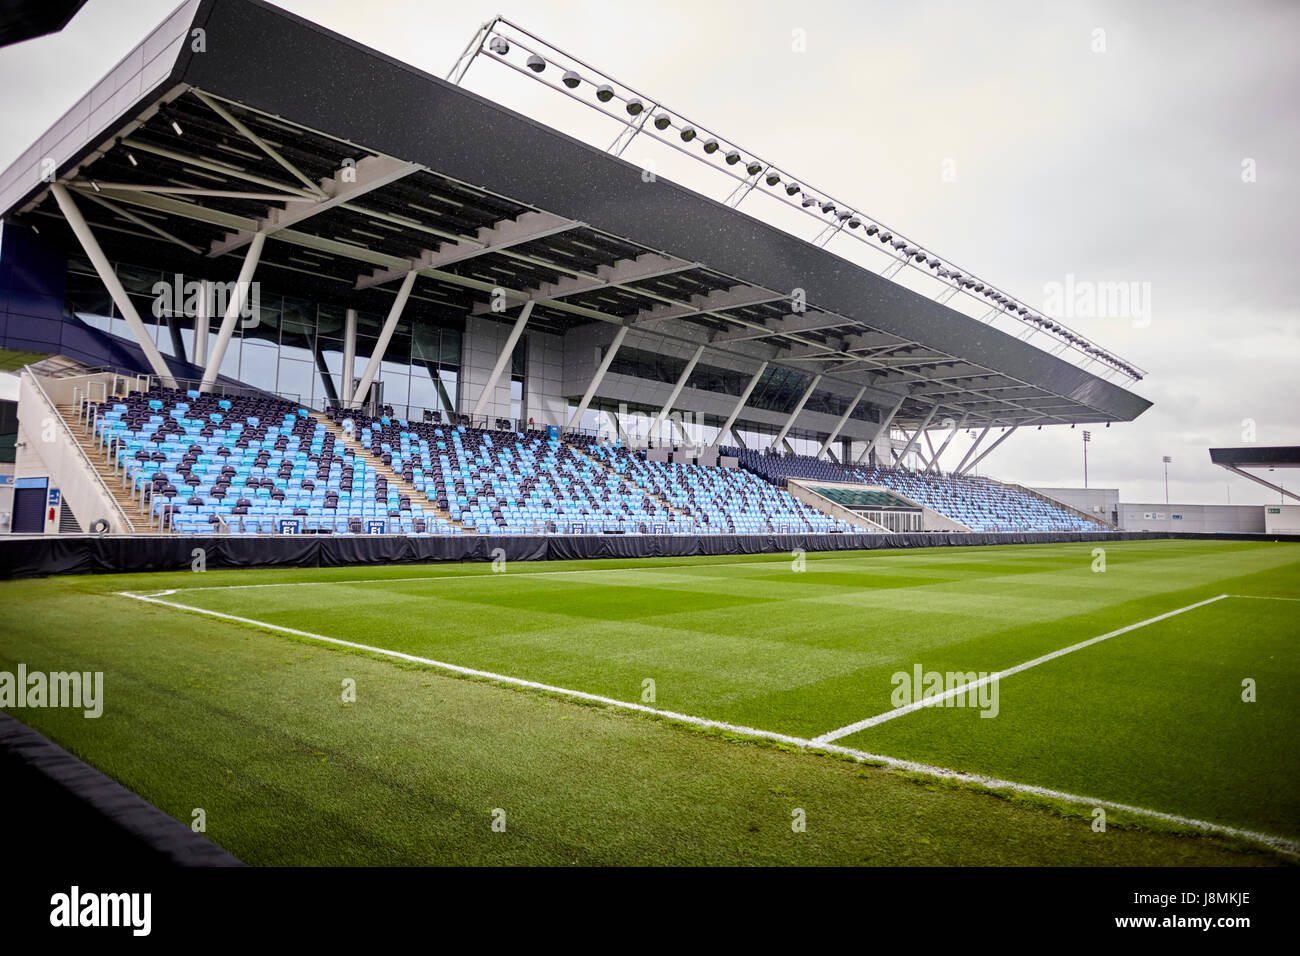 Manchester City Etihad Stadium academy stadium, the mixed shades of blue seats help make the empty stadium look - Stock Image